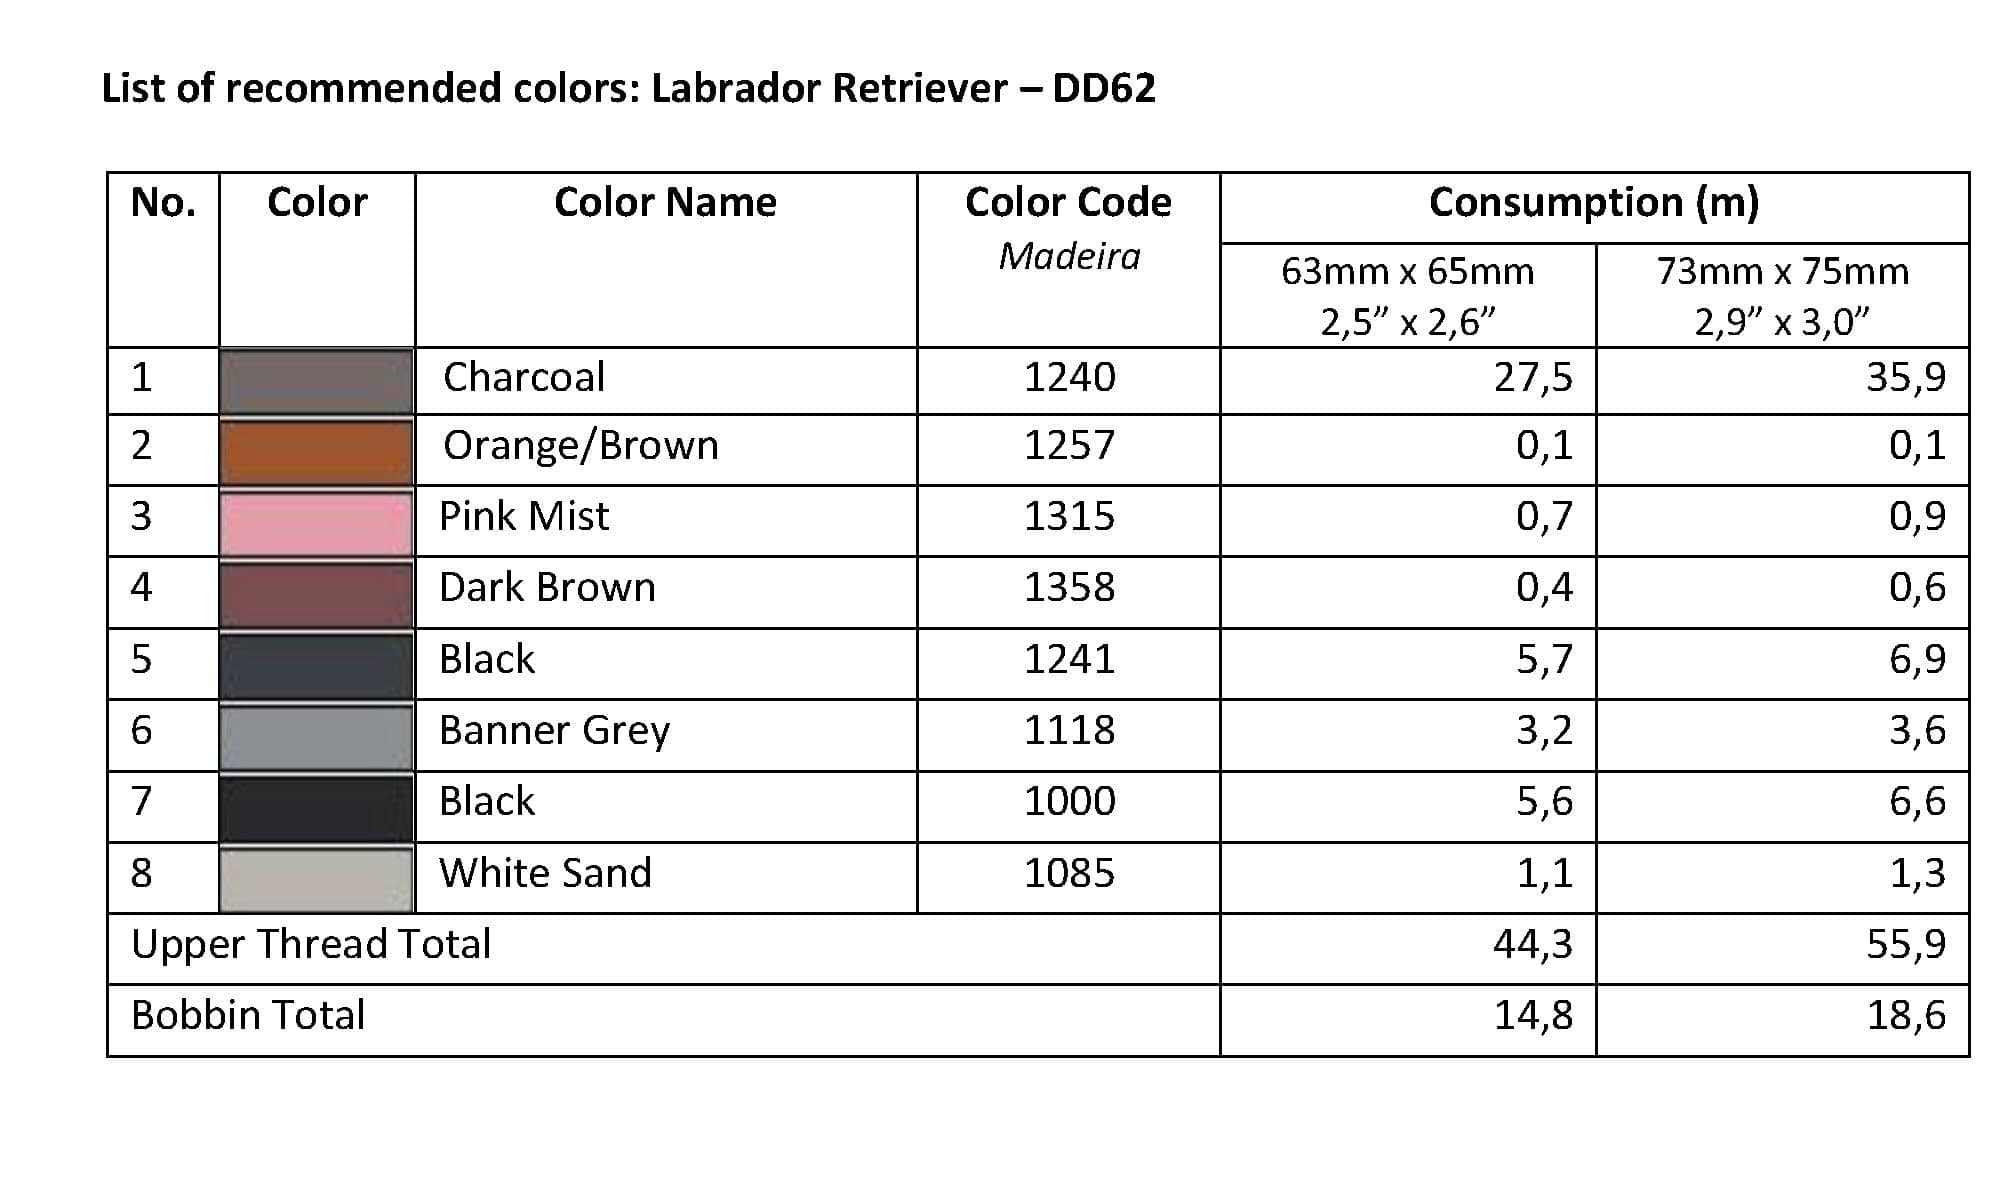 List of Recommended Colors -Labrador Retriever DD62